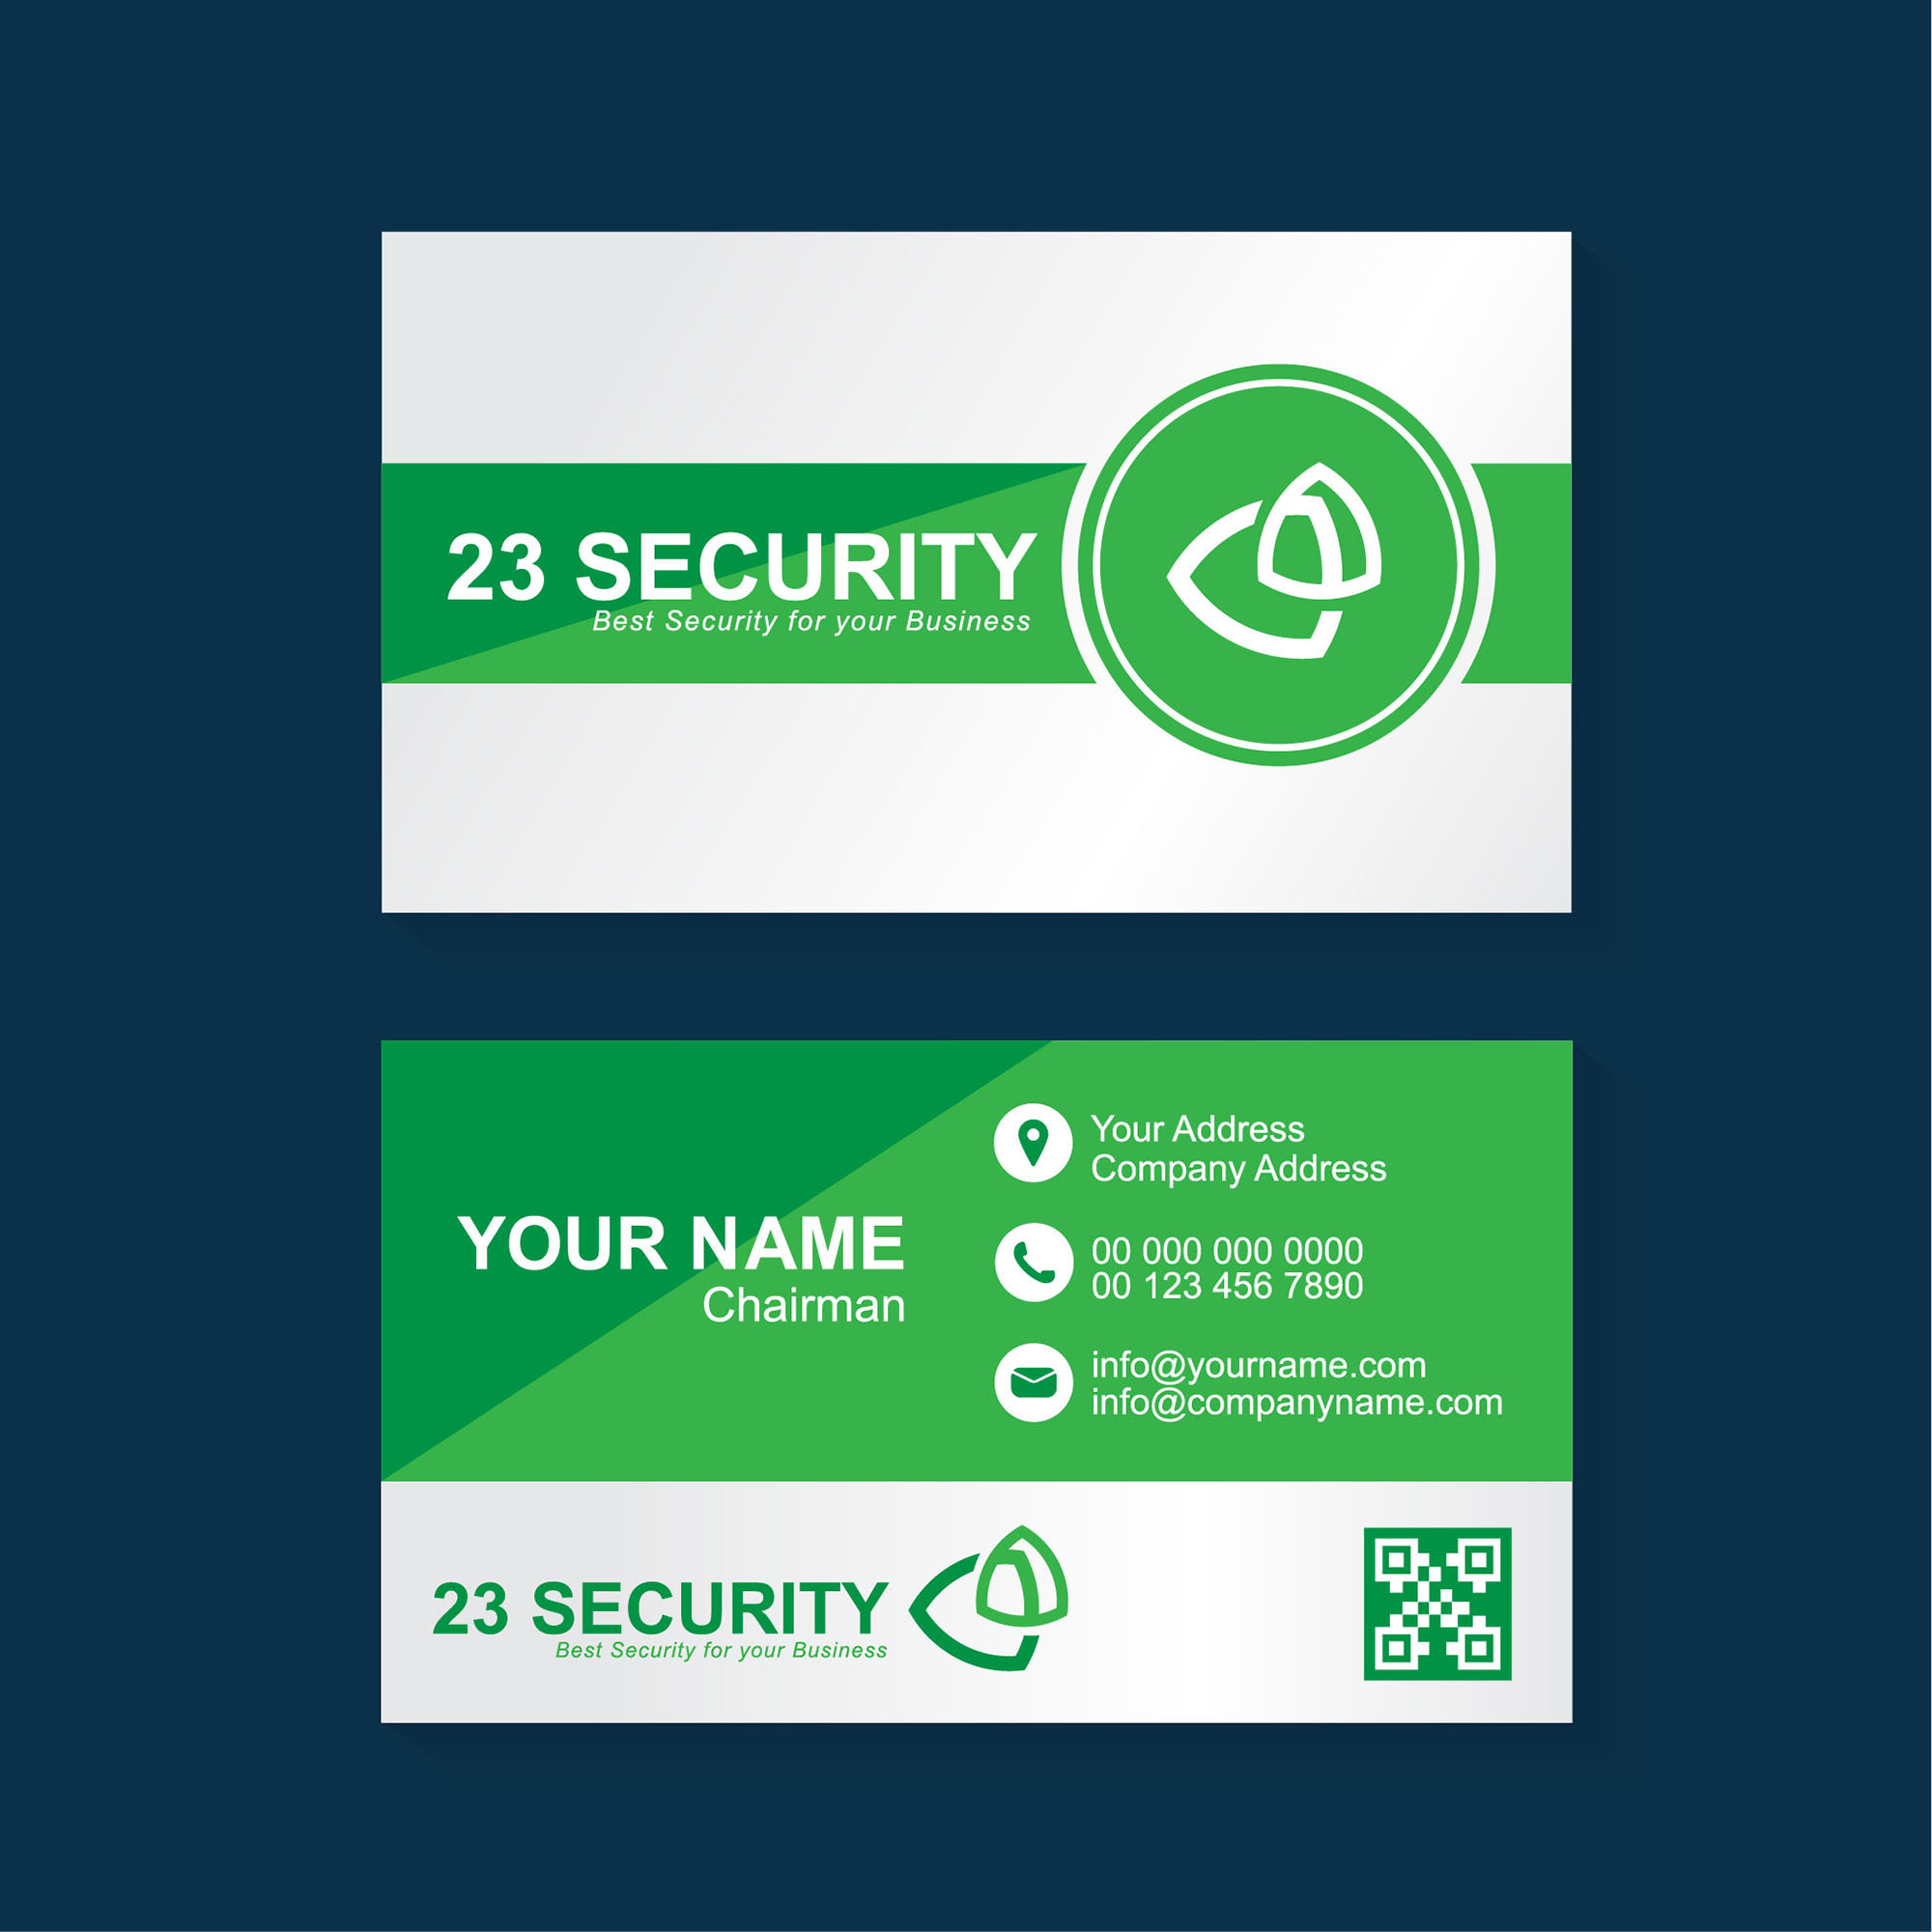 Security business card template free download wisxi business card business cards business card design business card template design templates reheart Gallery